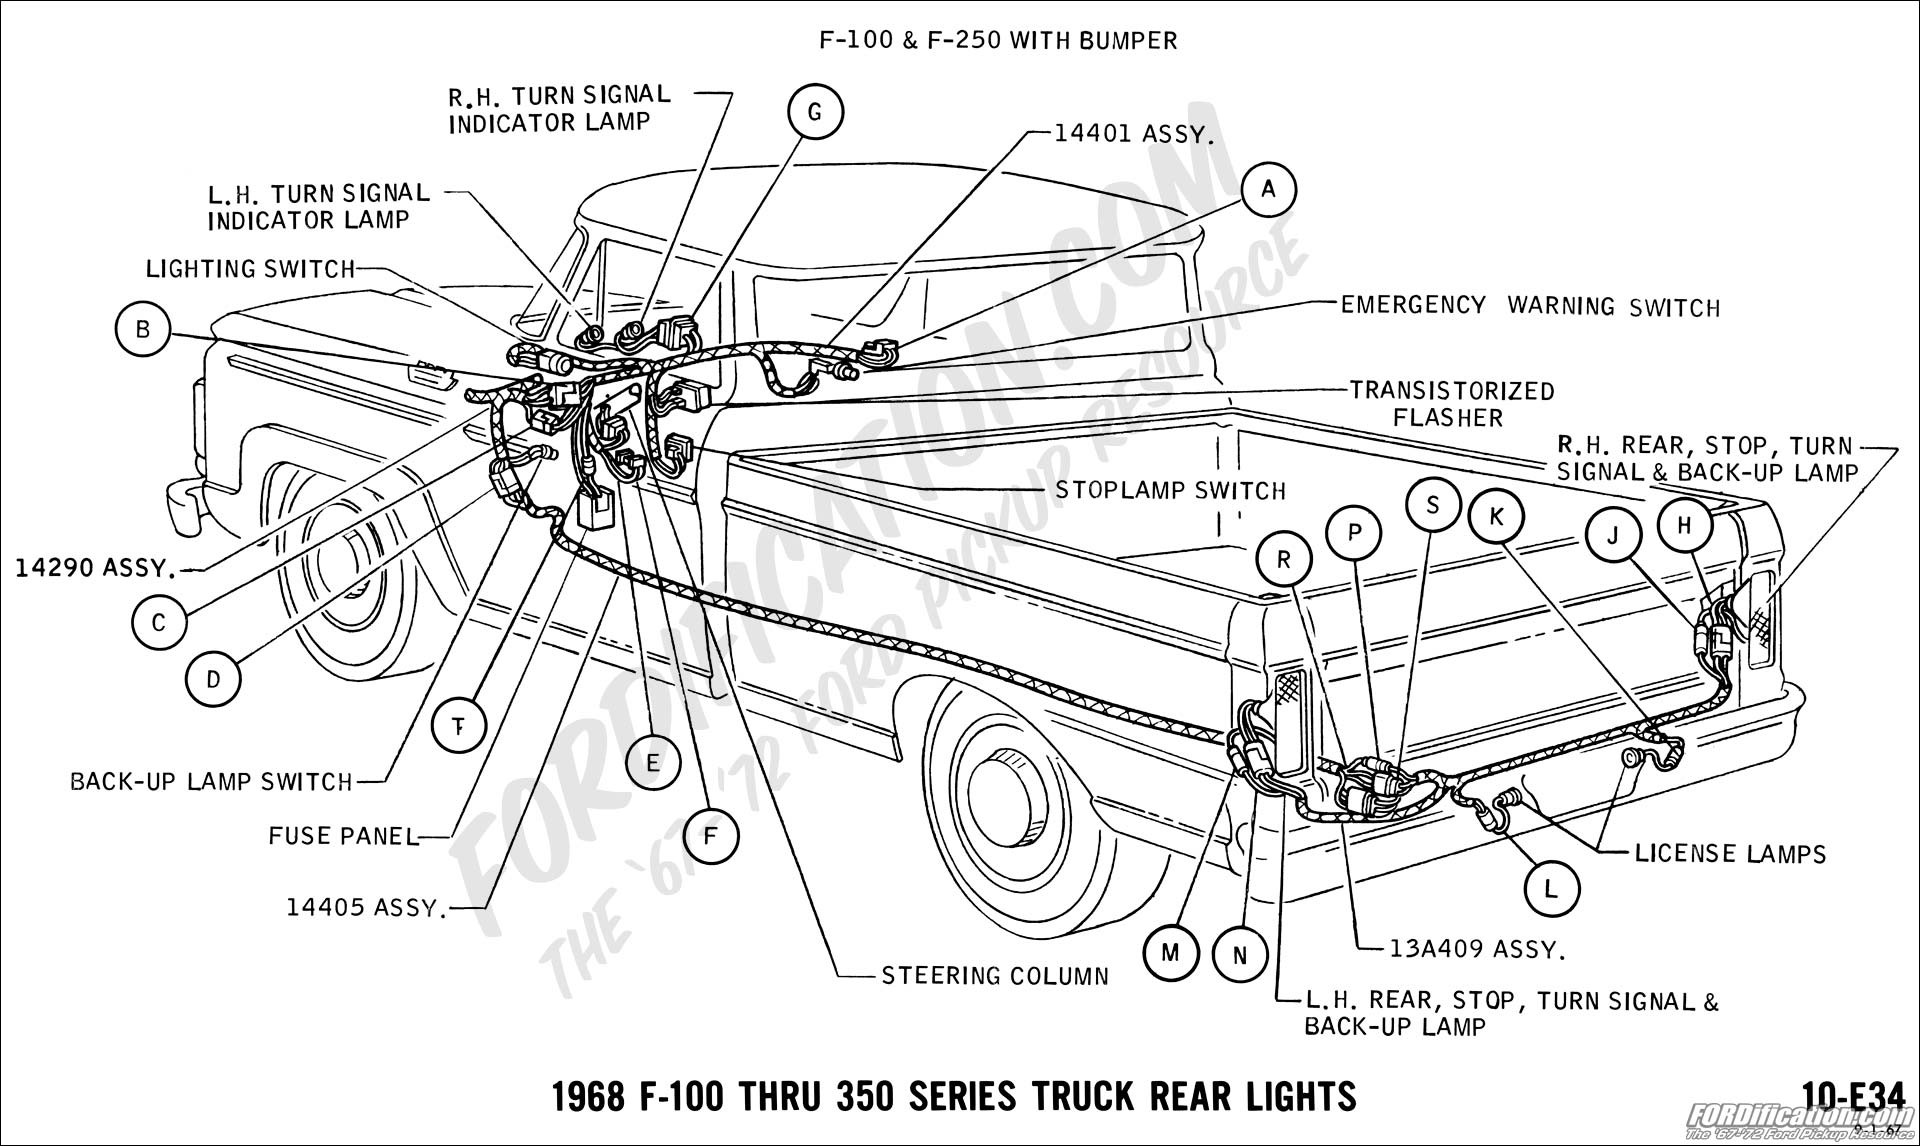 Under Car Hood Diagram Lifted fords ford Under the Hood Pinterest Of Under Car Hood Diagram